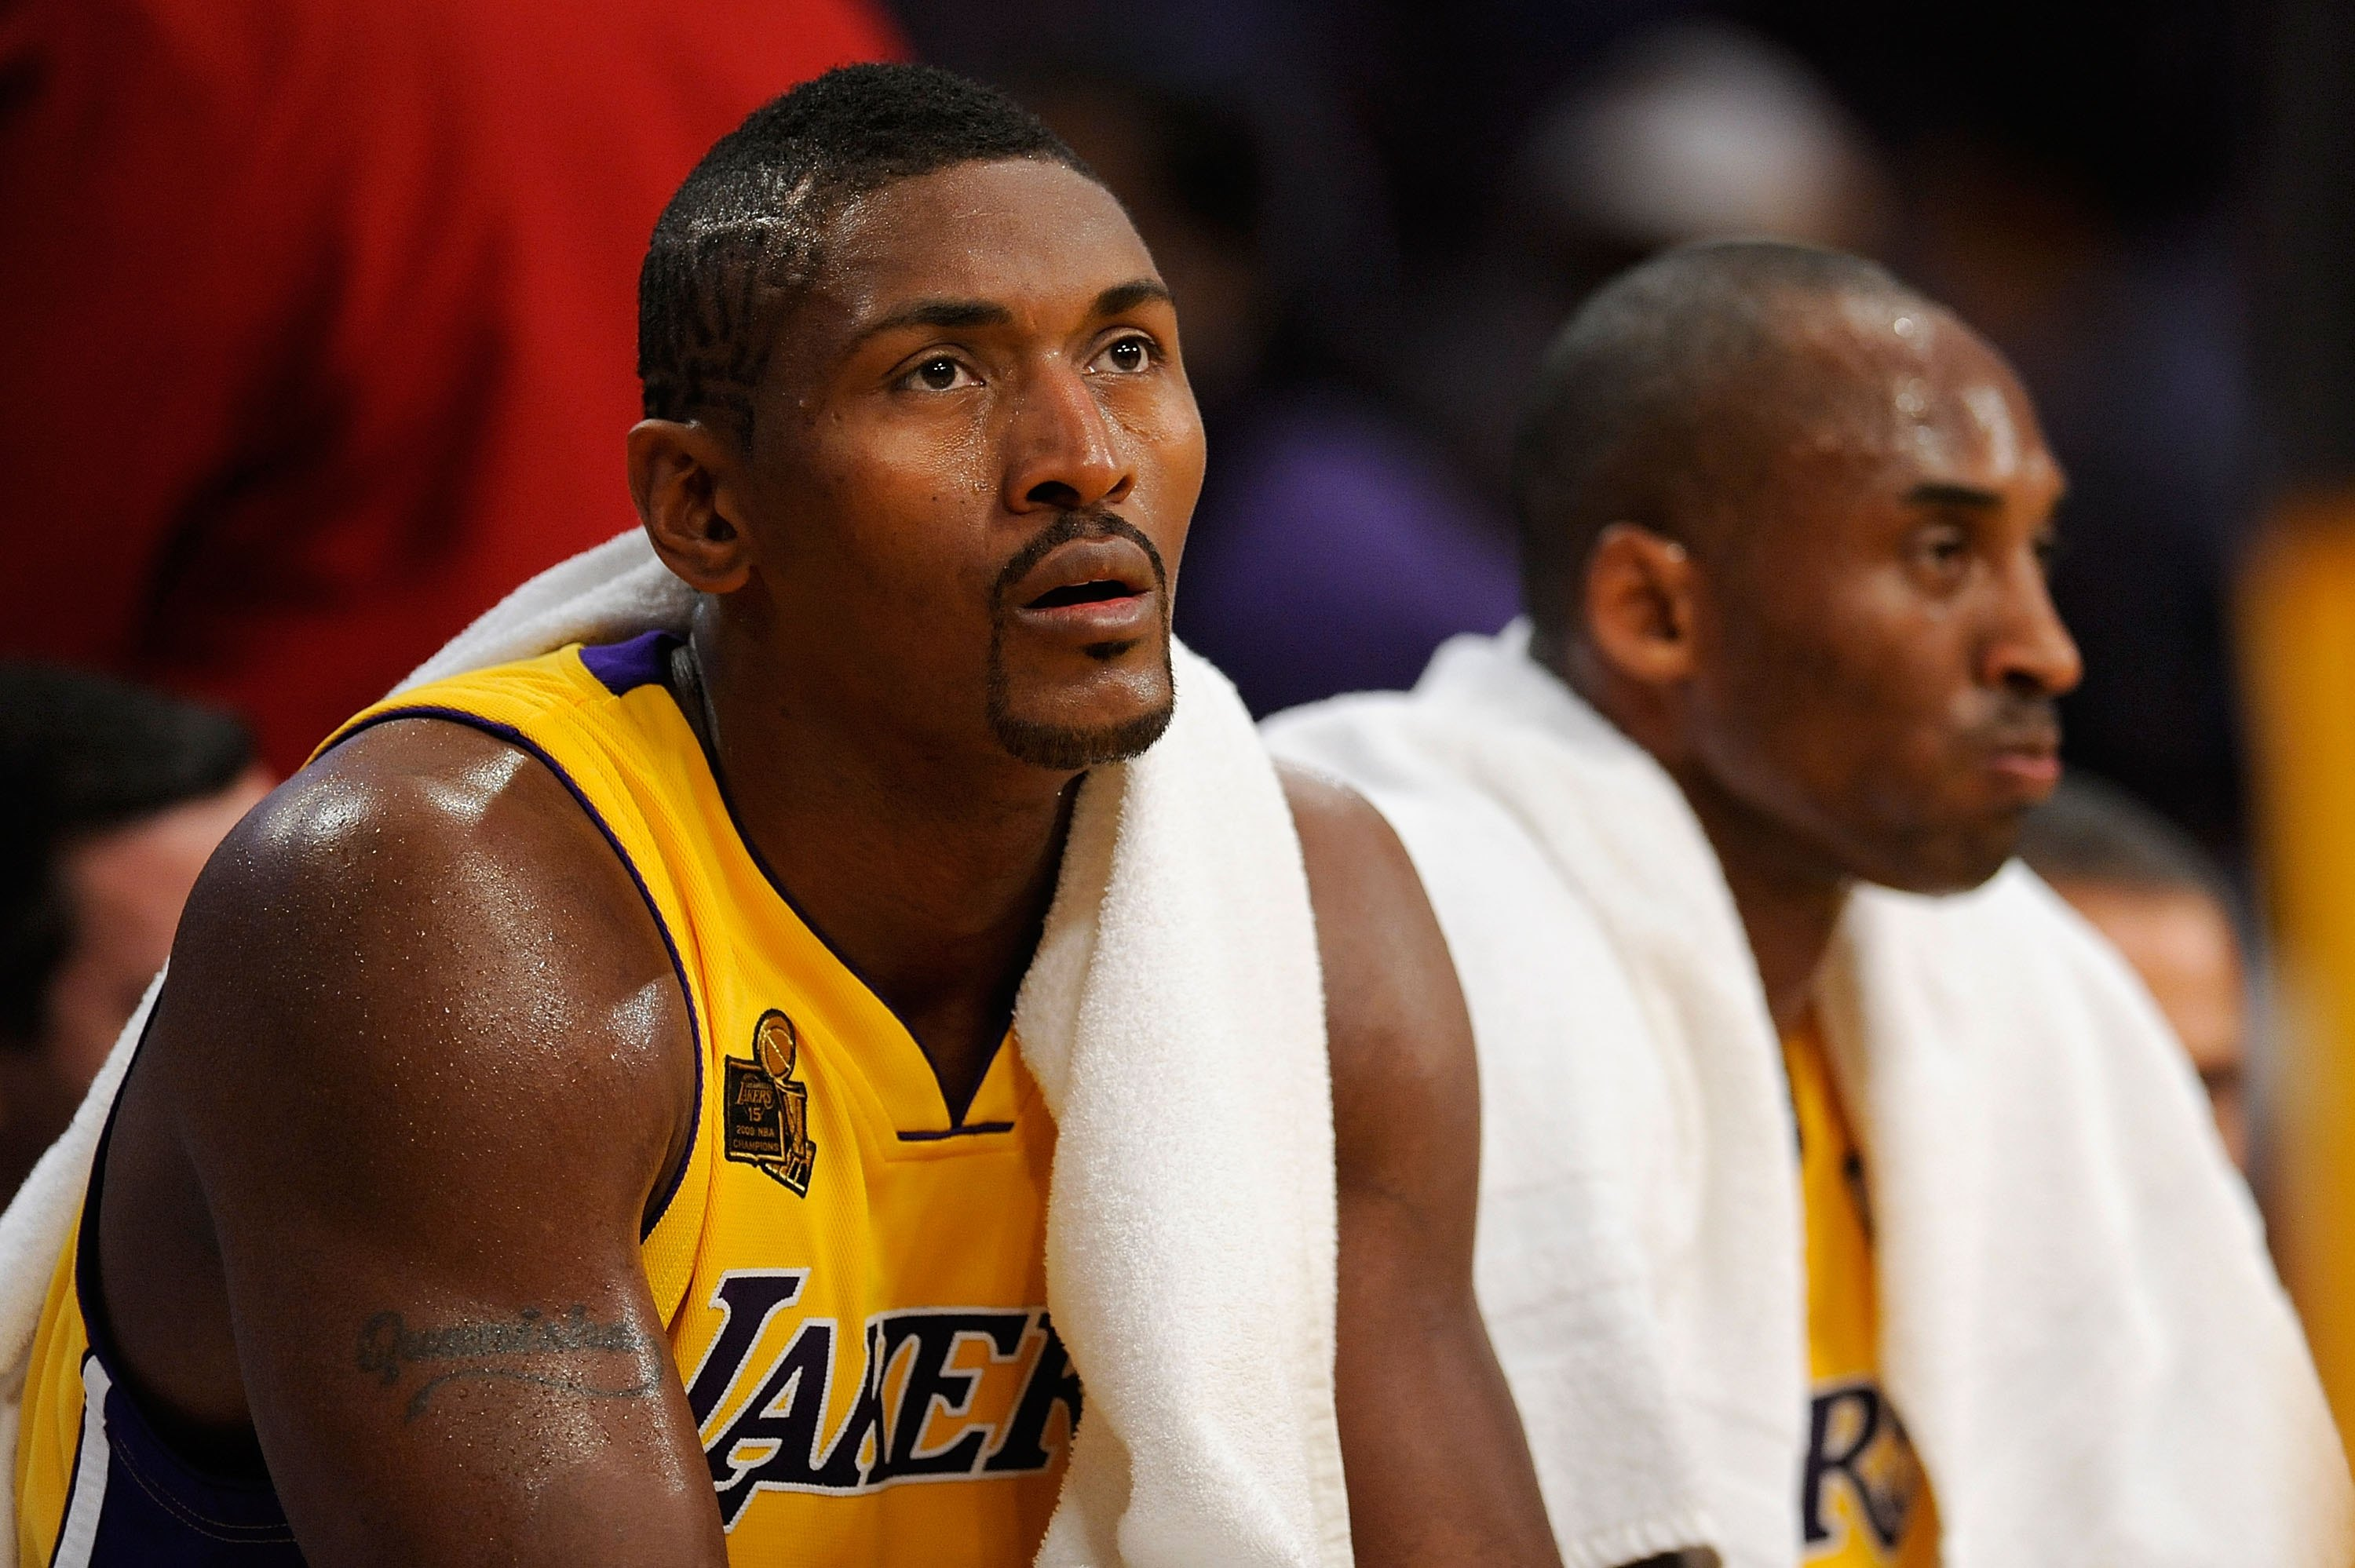 Tru Warrior and the Black Mamba always bring that toughness...